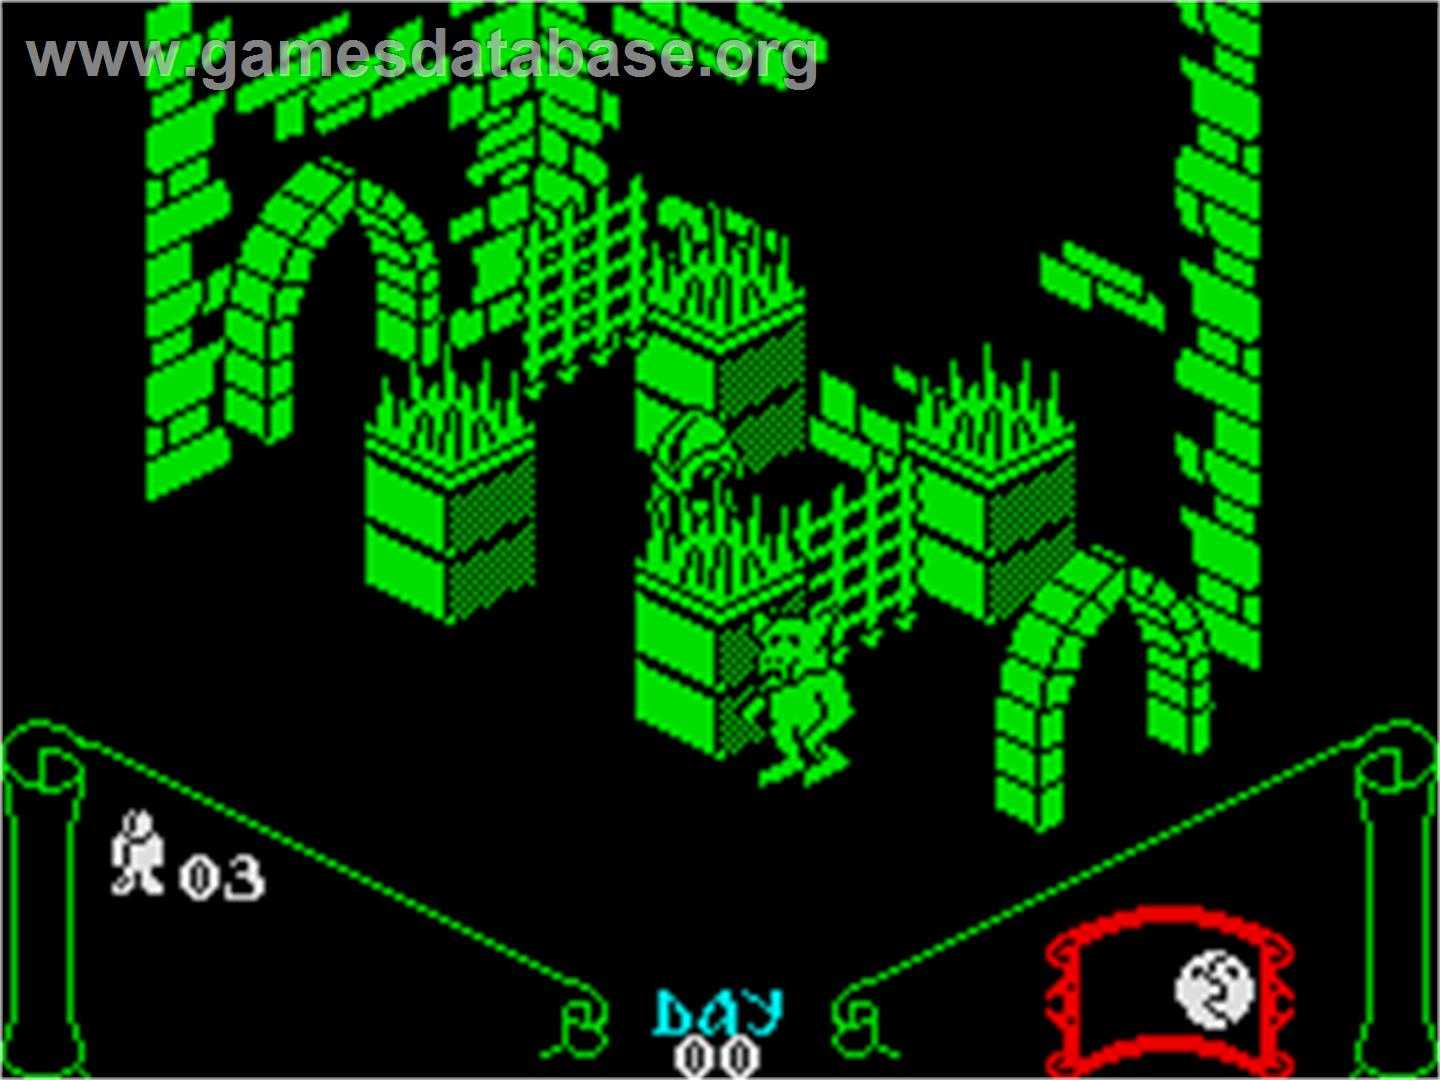 Knight Lore Sinclair Zx Spectrum Games Database